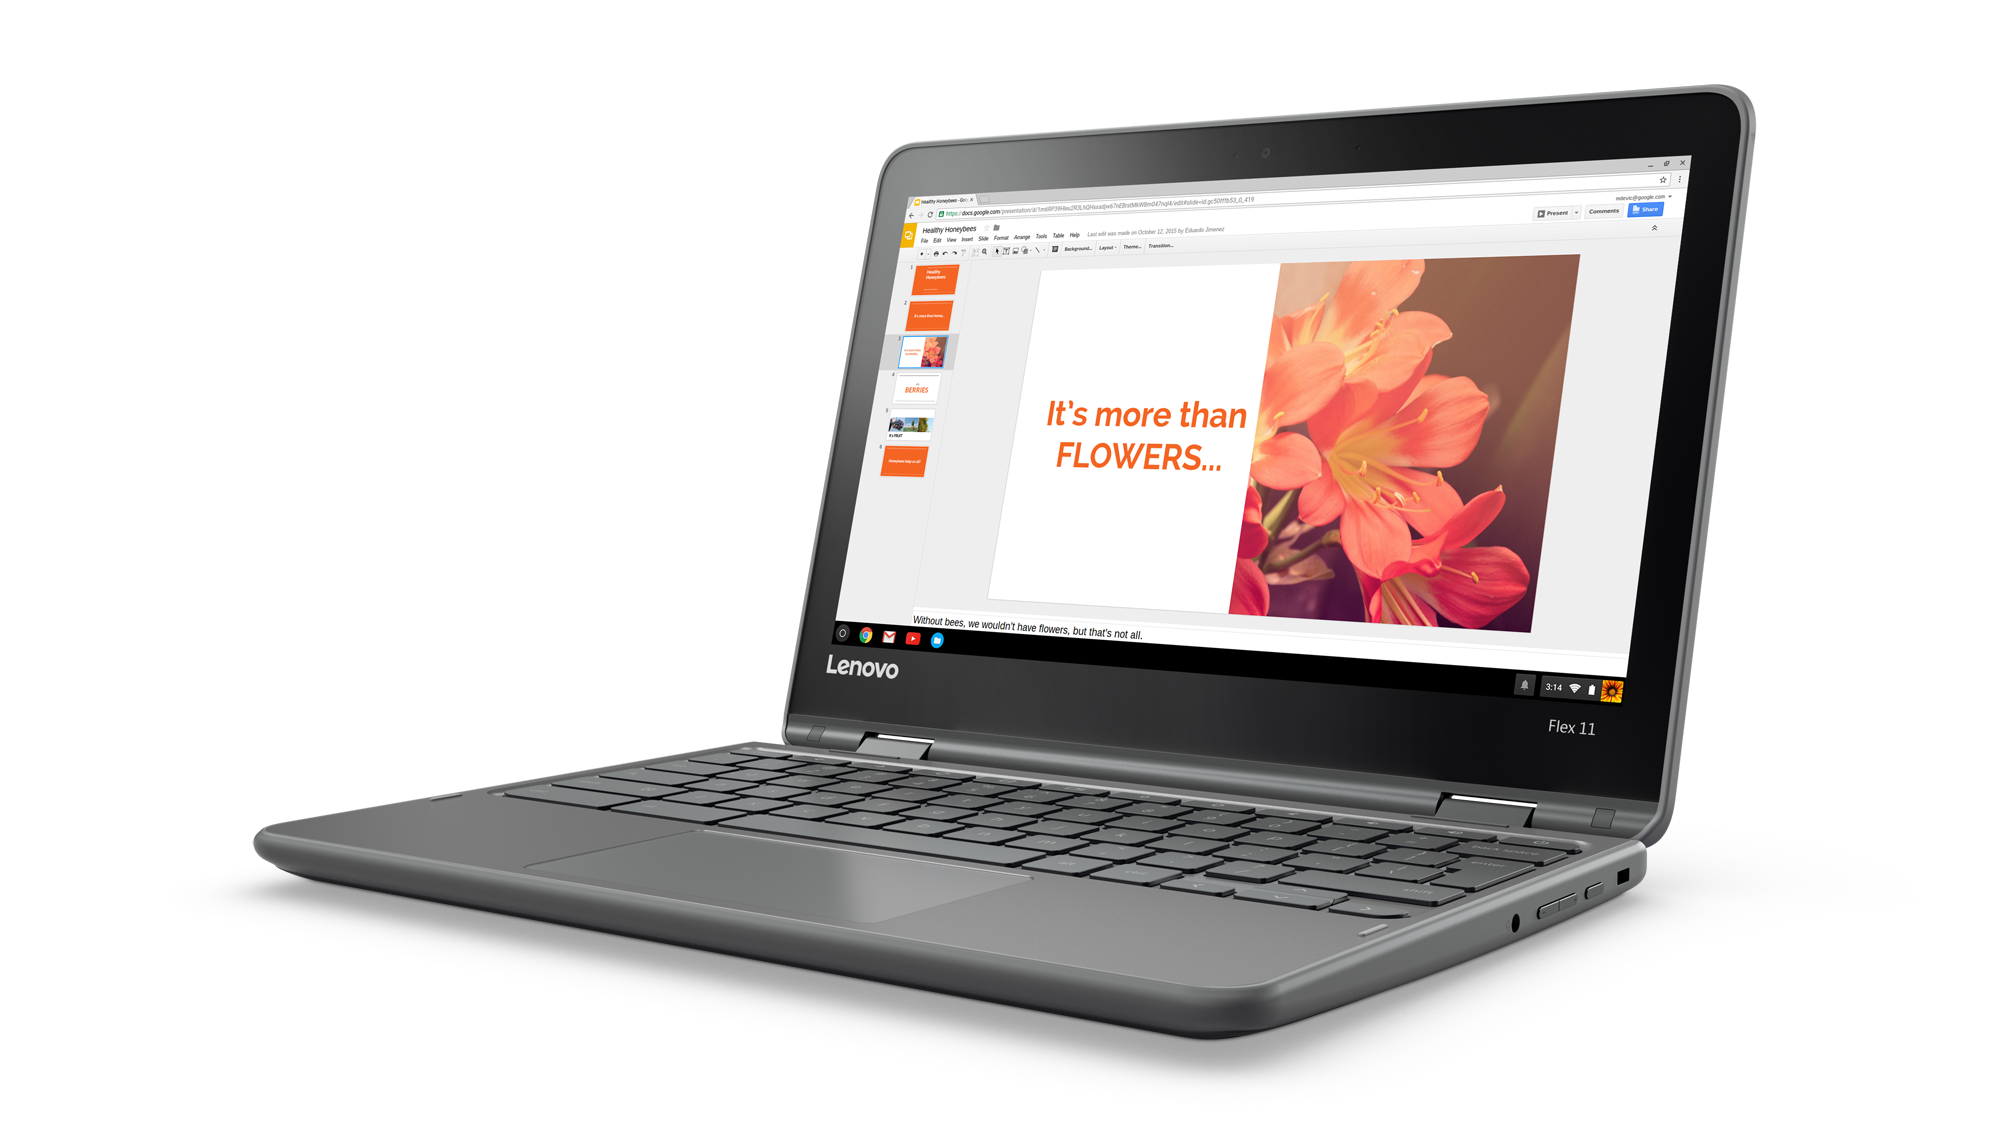 Lenovo's convertible Chromebook is built with Android apps in mind